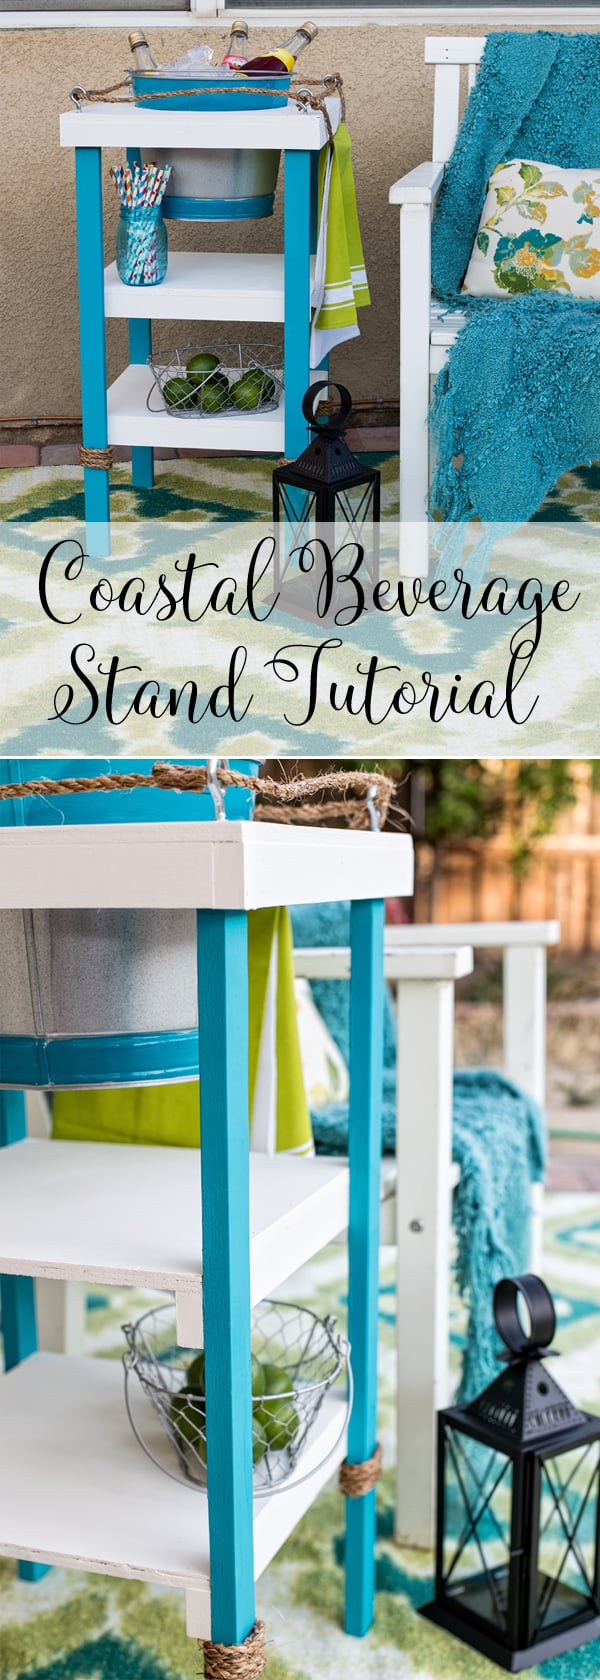 DIY Coastal Beverage Stand - full tutorial - make your own perfect for summer parties - keep your drinks cold with beach inspired project